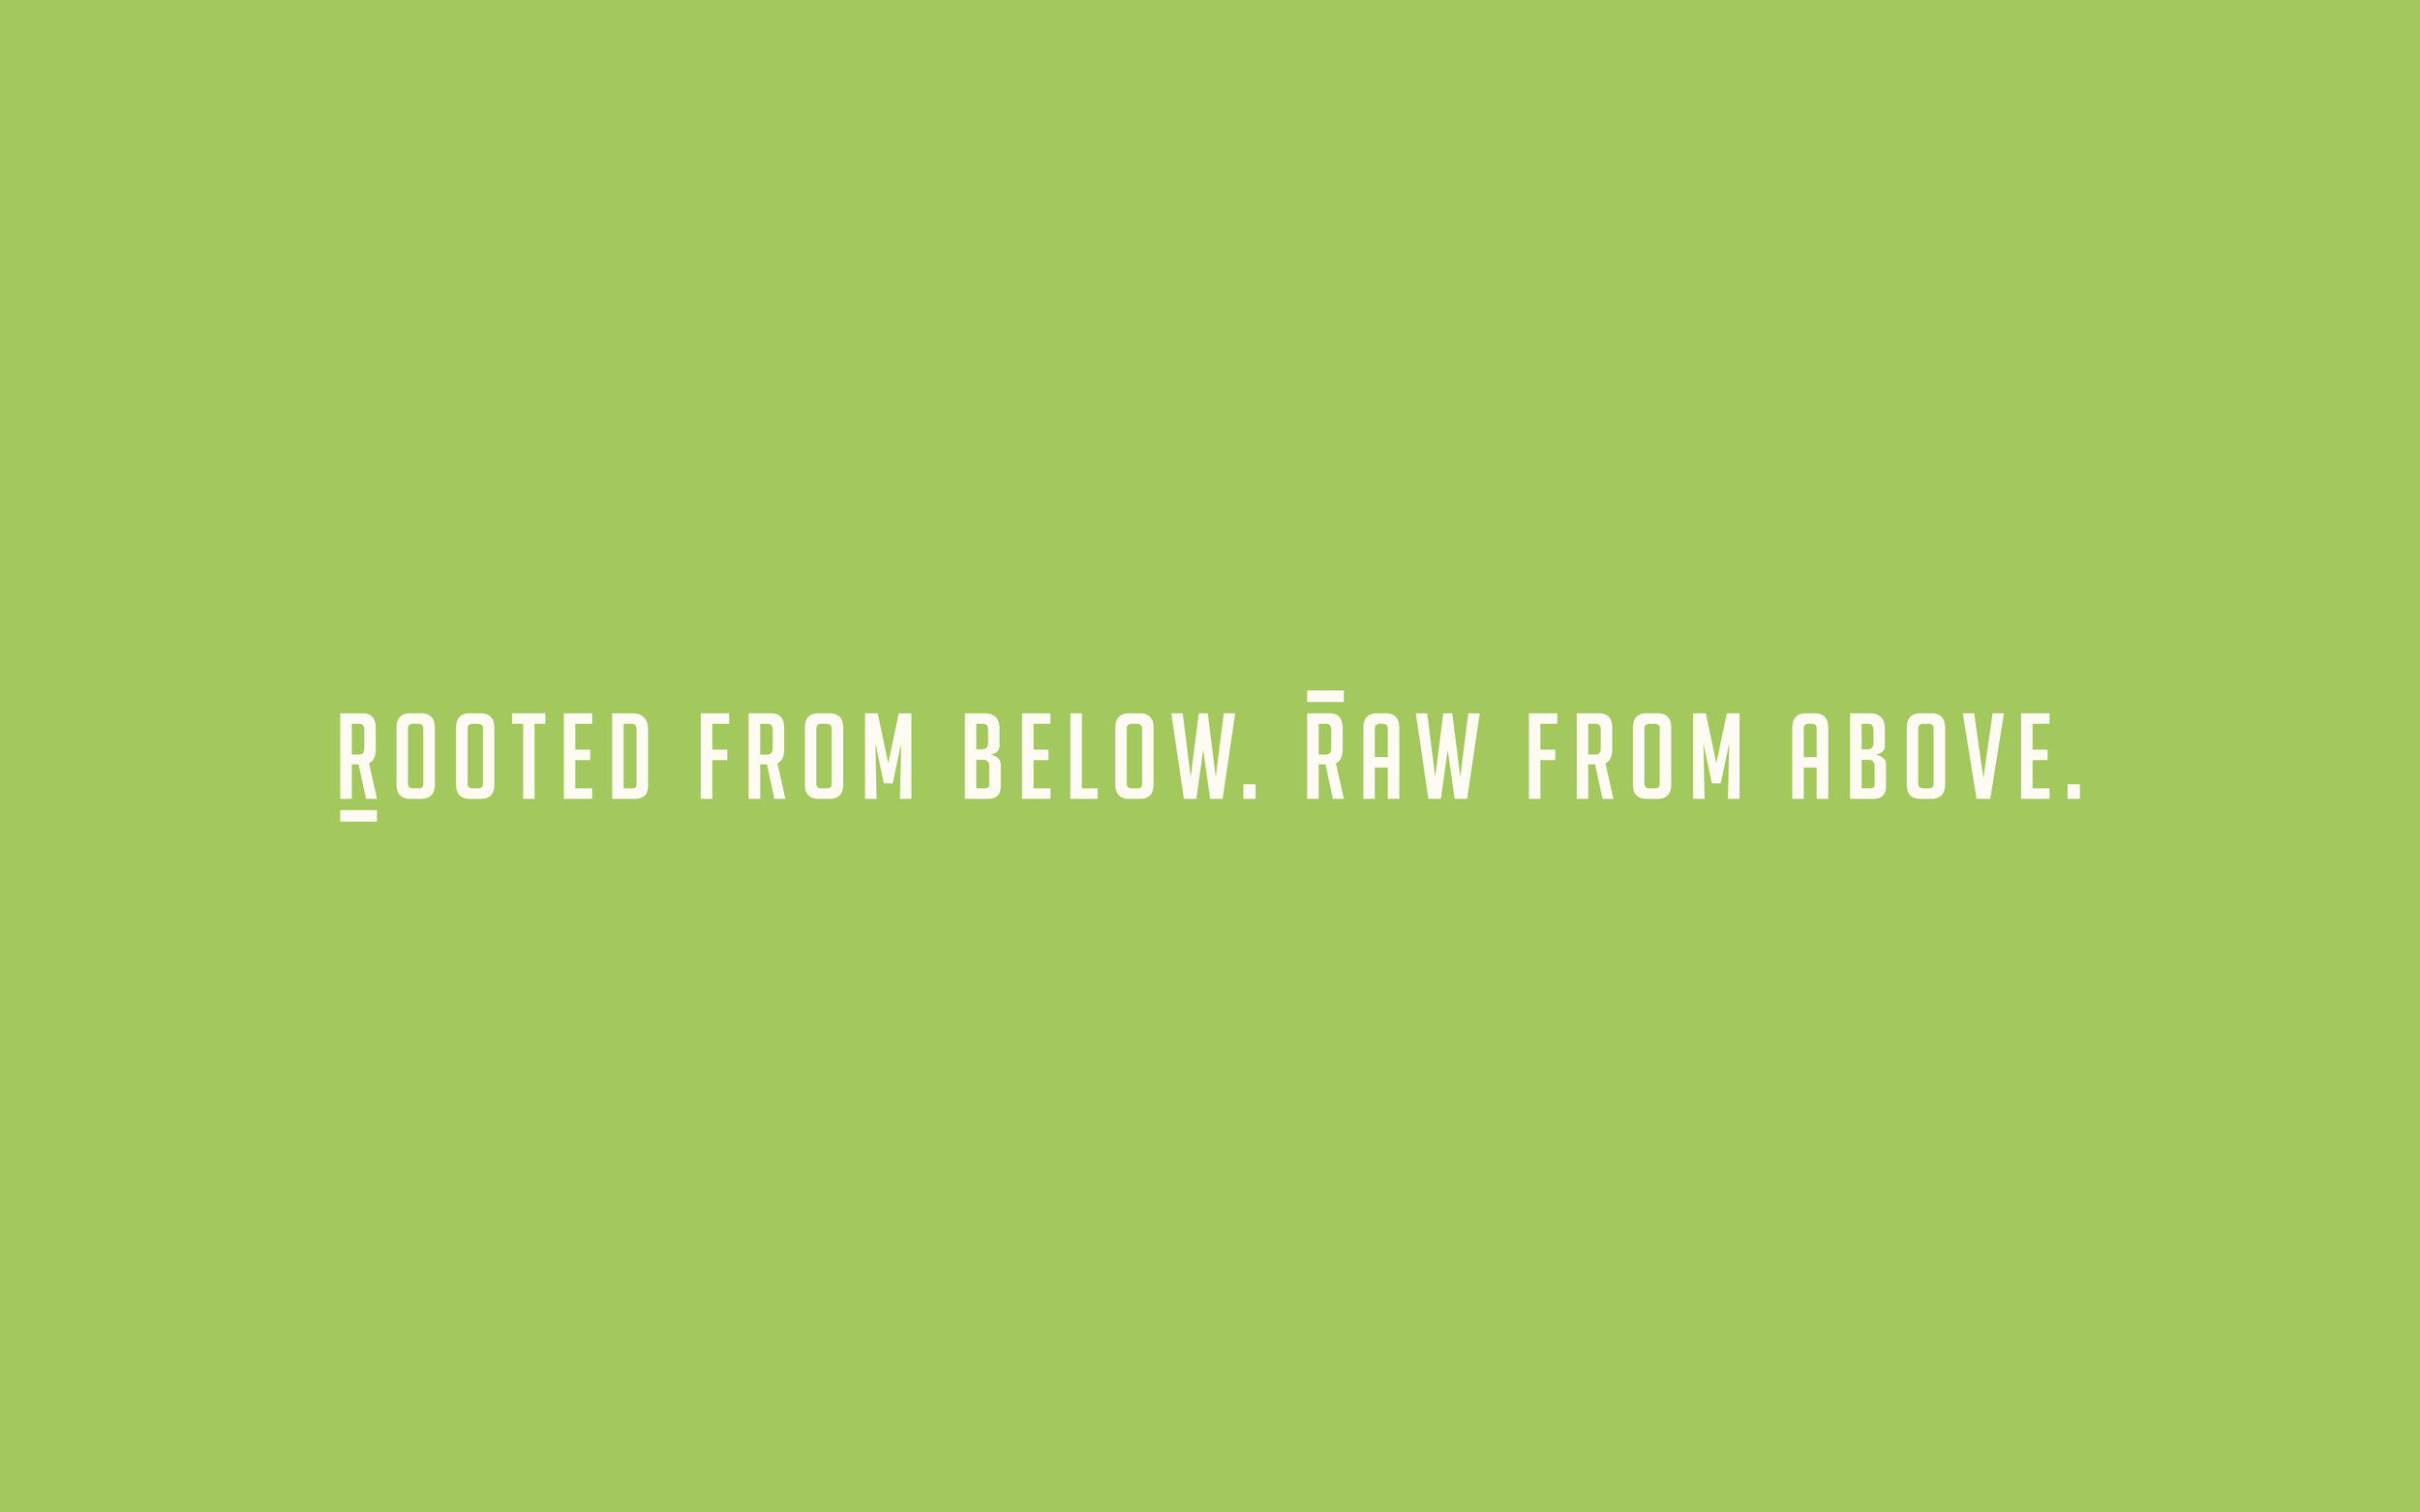 rooted raw3.jpg